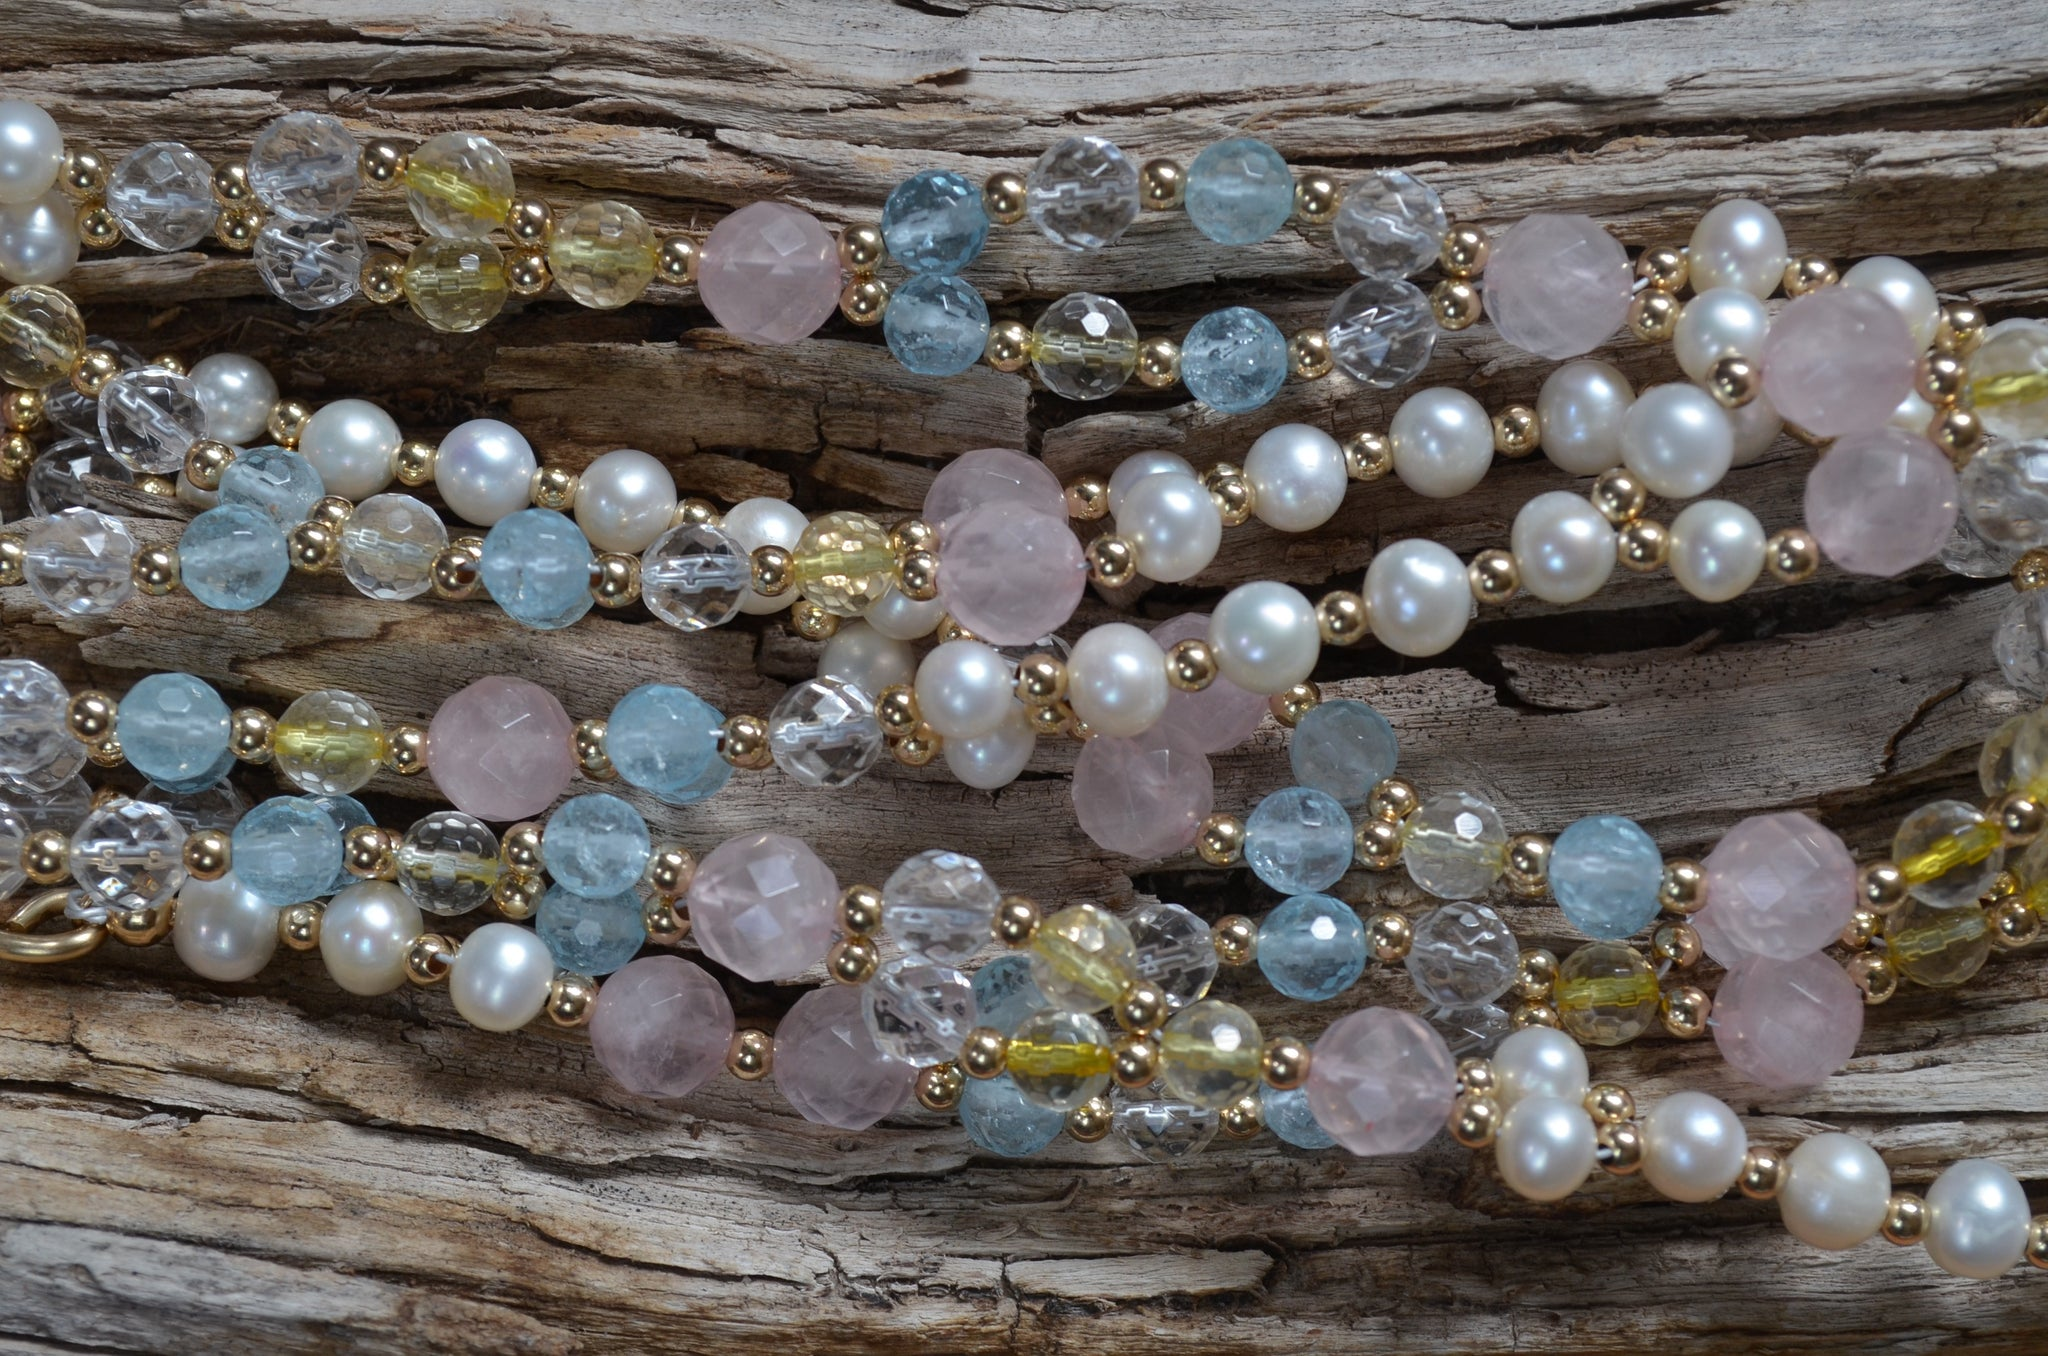 8mm Rose Quartz, 6mm Quartz, 6mm Citrine, 6mm Blue Topaz, Pearl, Gold-Filled